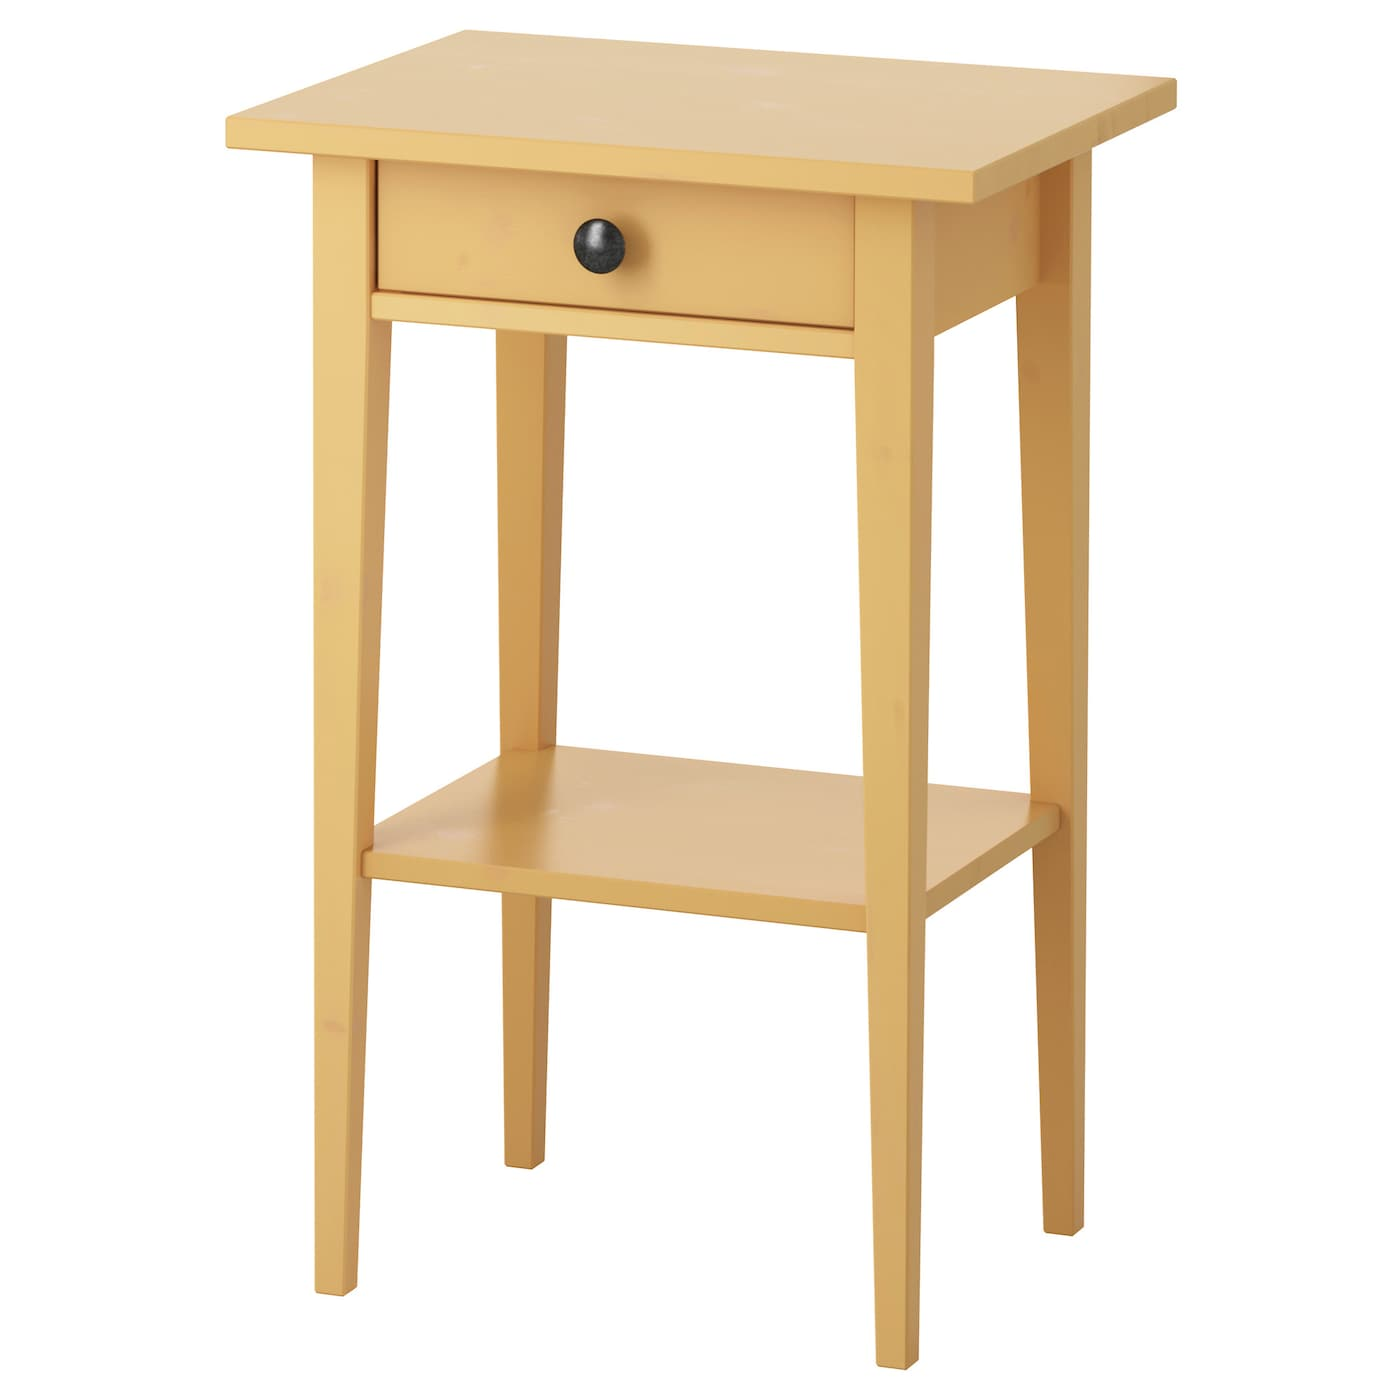 ikea hemnes bedside table made of solid wood which is a hardwearing